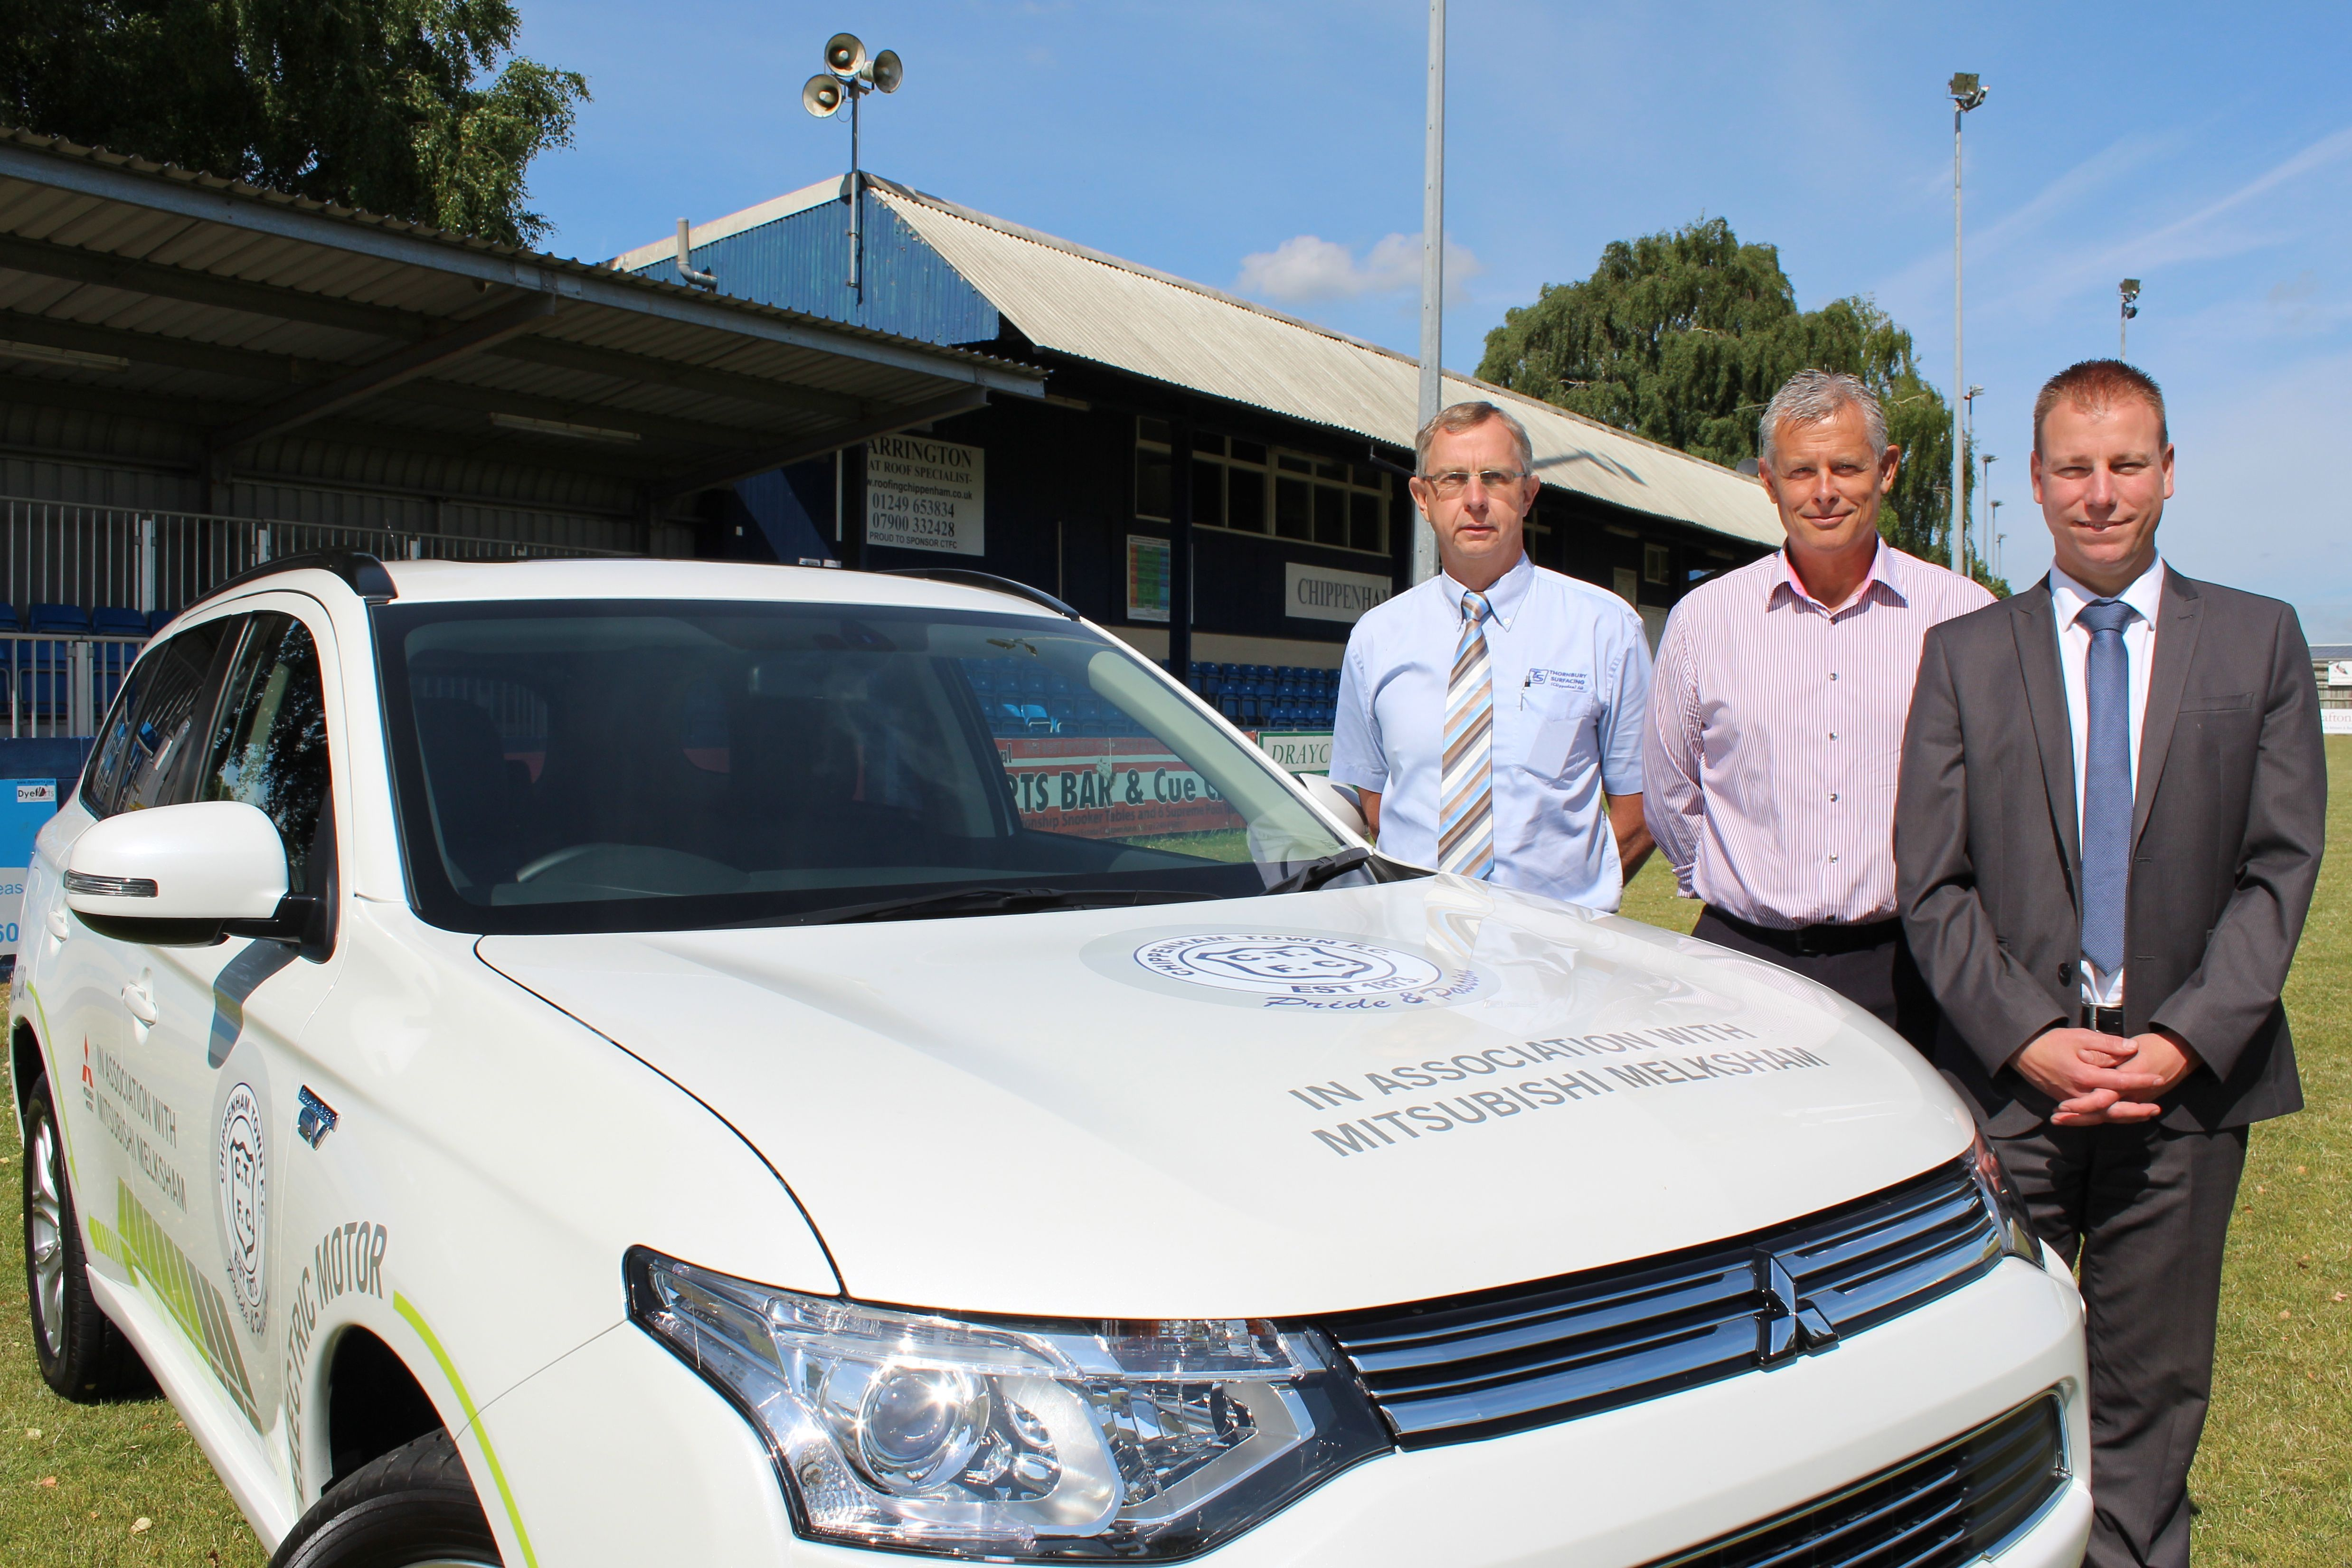 CHIPPENHAM TOWN FC REVEALS LATEST SIGNING: A MITSUBISHI OUTLANDER PHEV